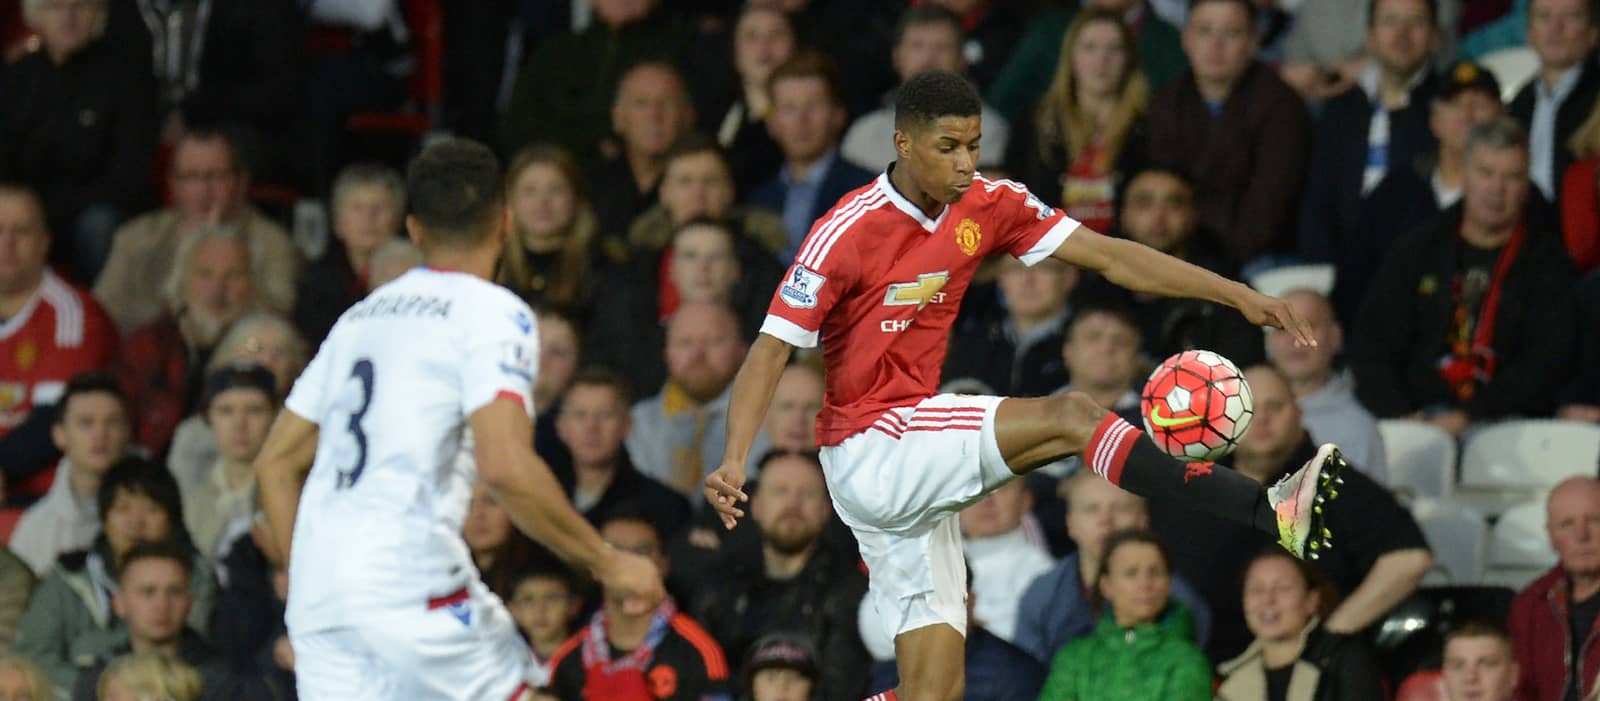 Photo: Man United's Marcus Rashford training ahead of Leicester City game